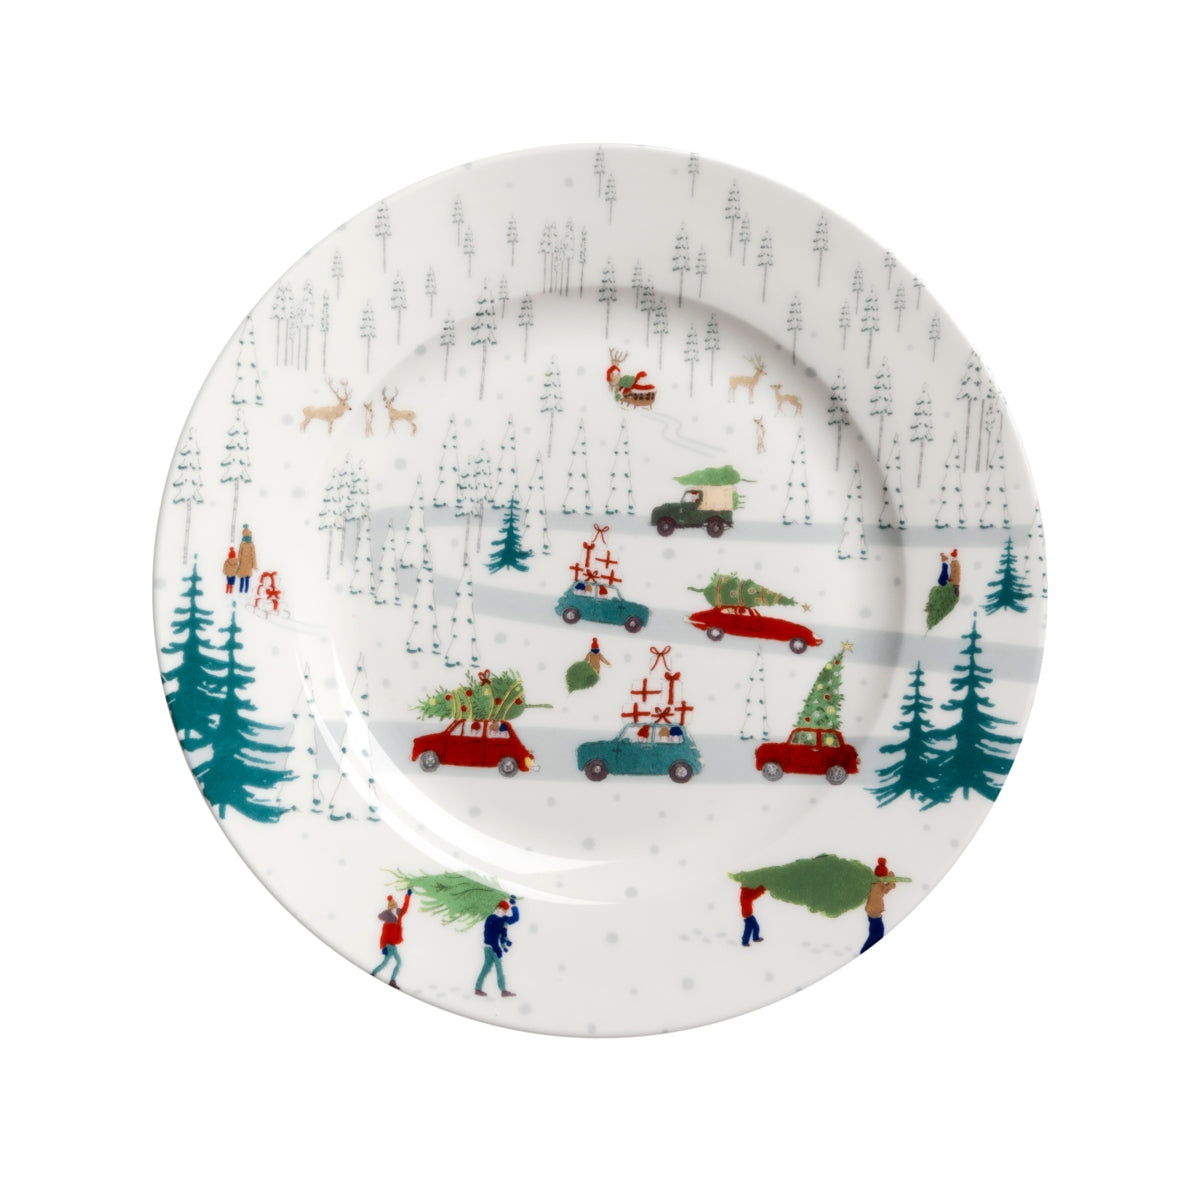 Home for Christmas Side Plate